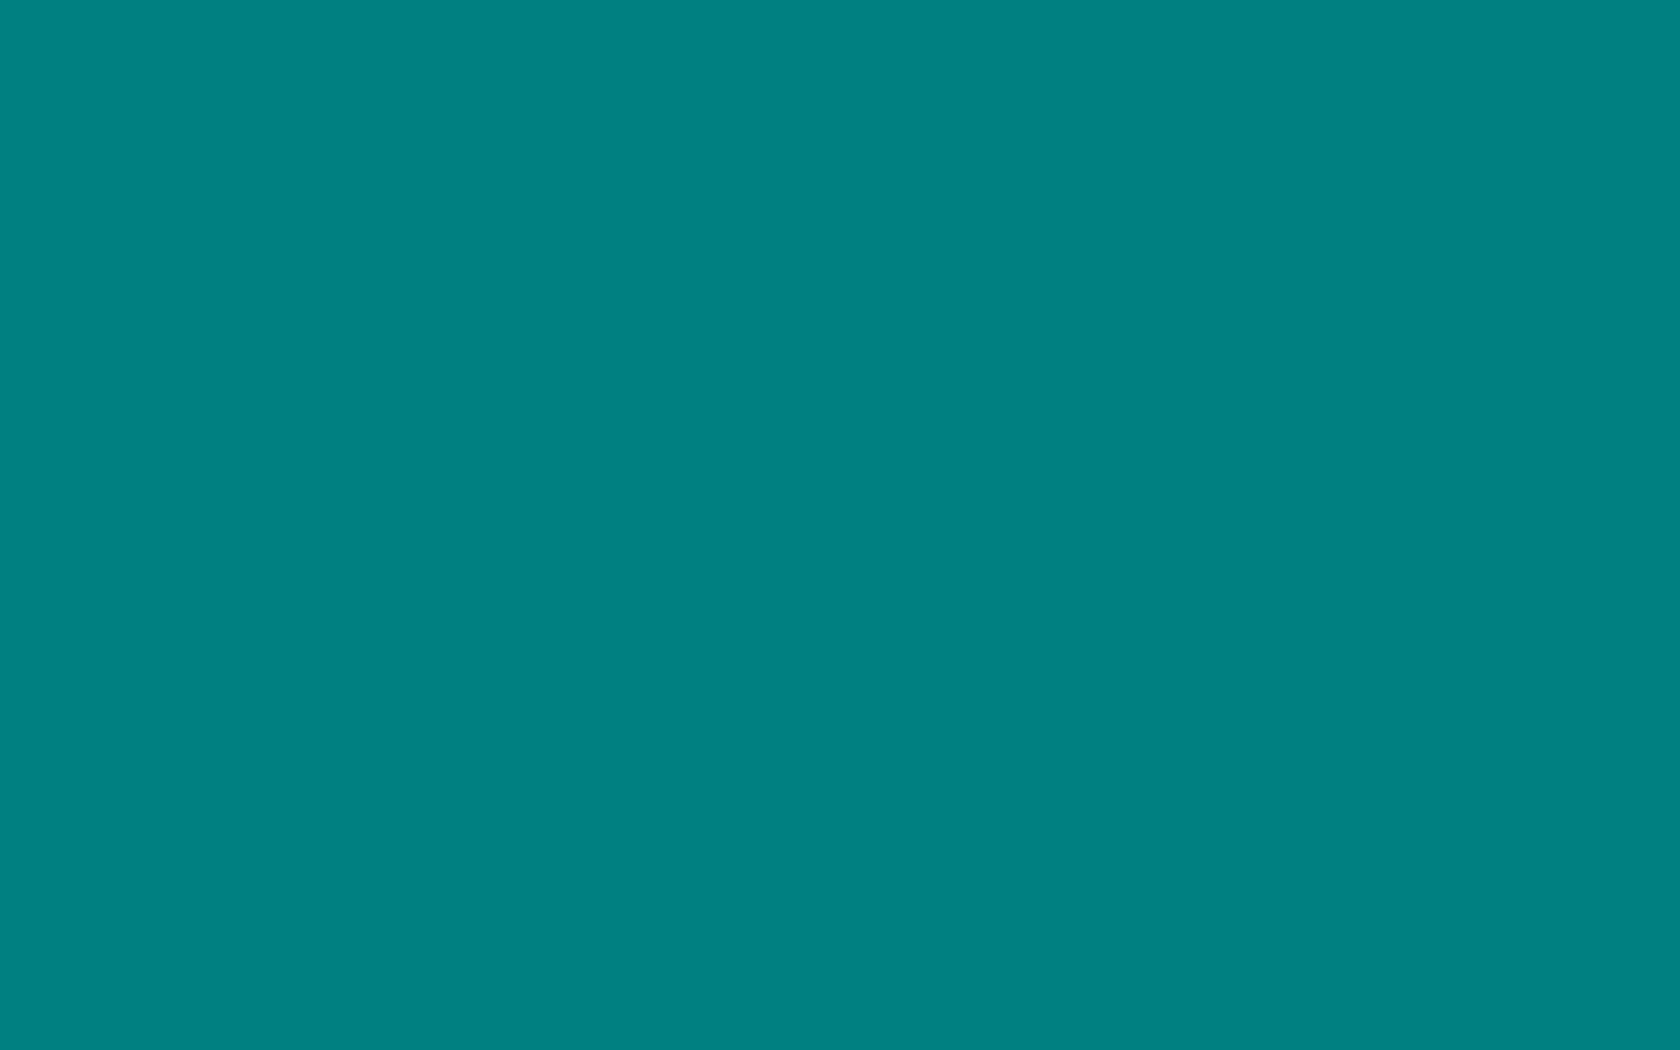 Solid color background pics What color is teal